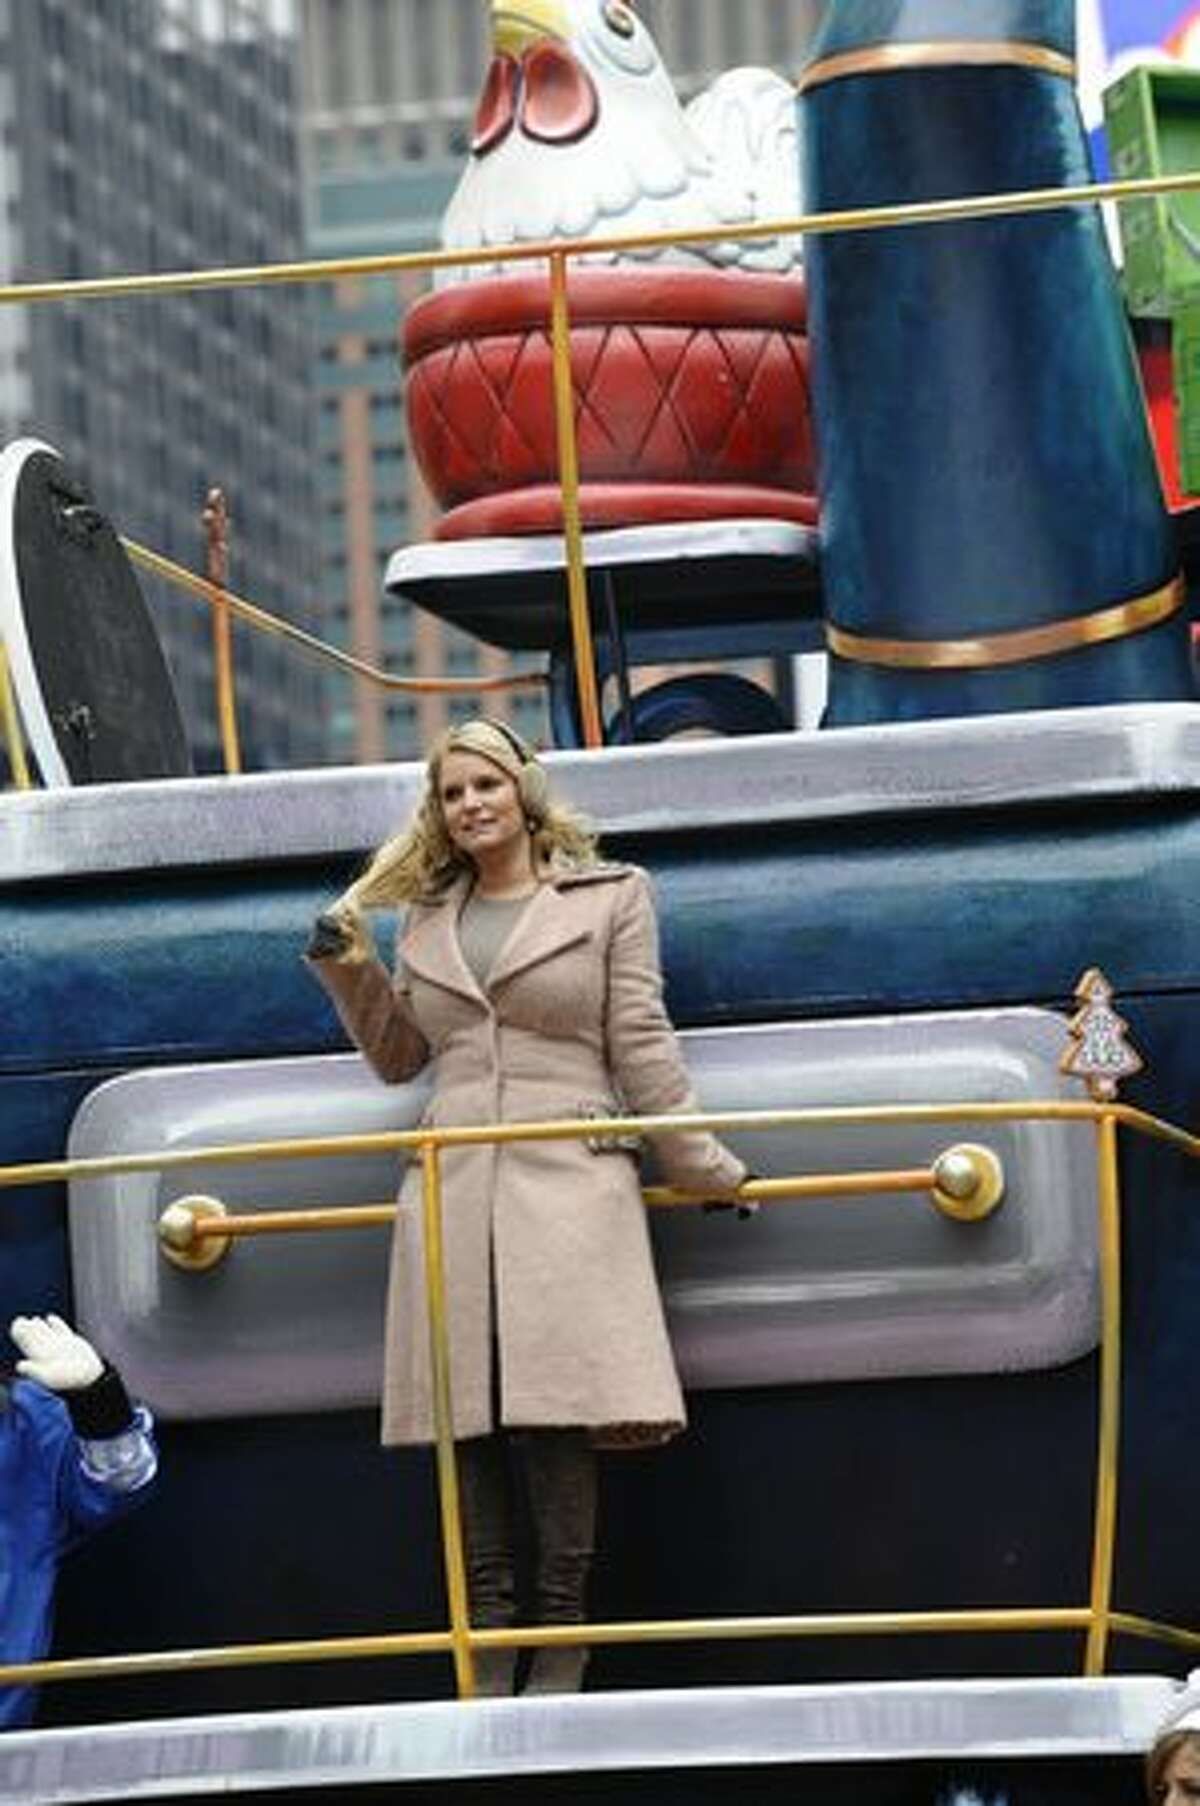 Jessica Simpson rides down 7th Ave in Times Square during the 84th annual Macy's Thanksgiving Day Parade in New York. AFP PHOTO / TIMOTHY A. CLARY (TIMOTHY A. CLARY/AFP/Getty Images)